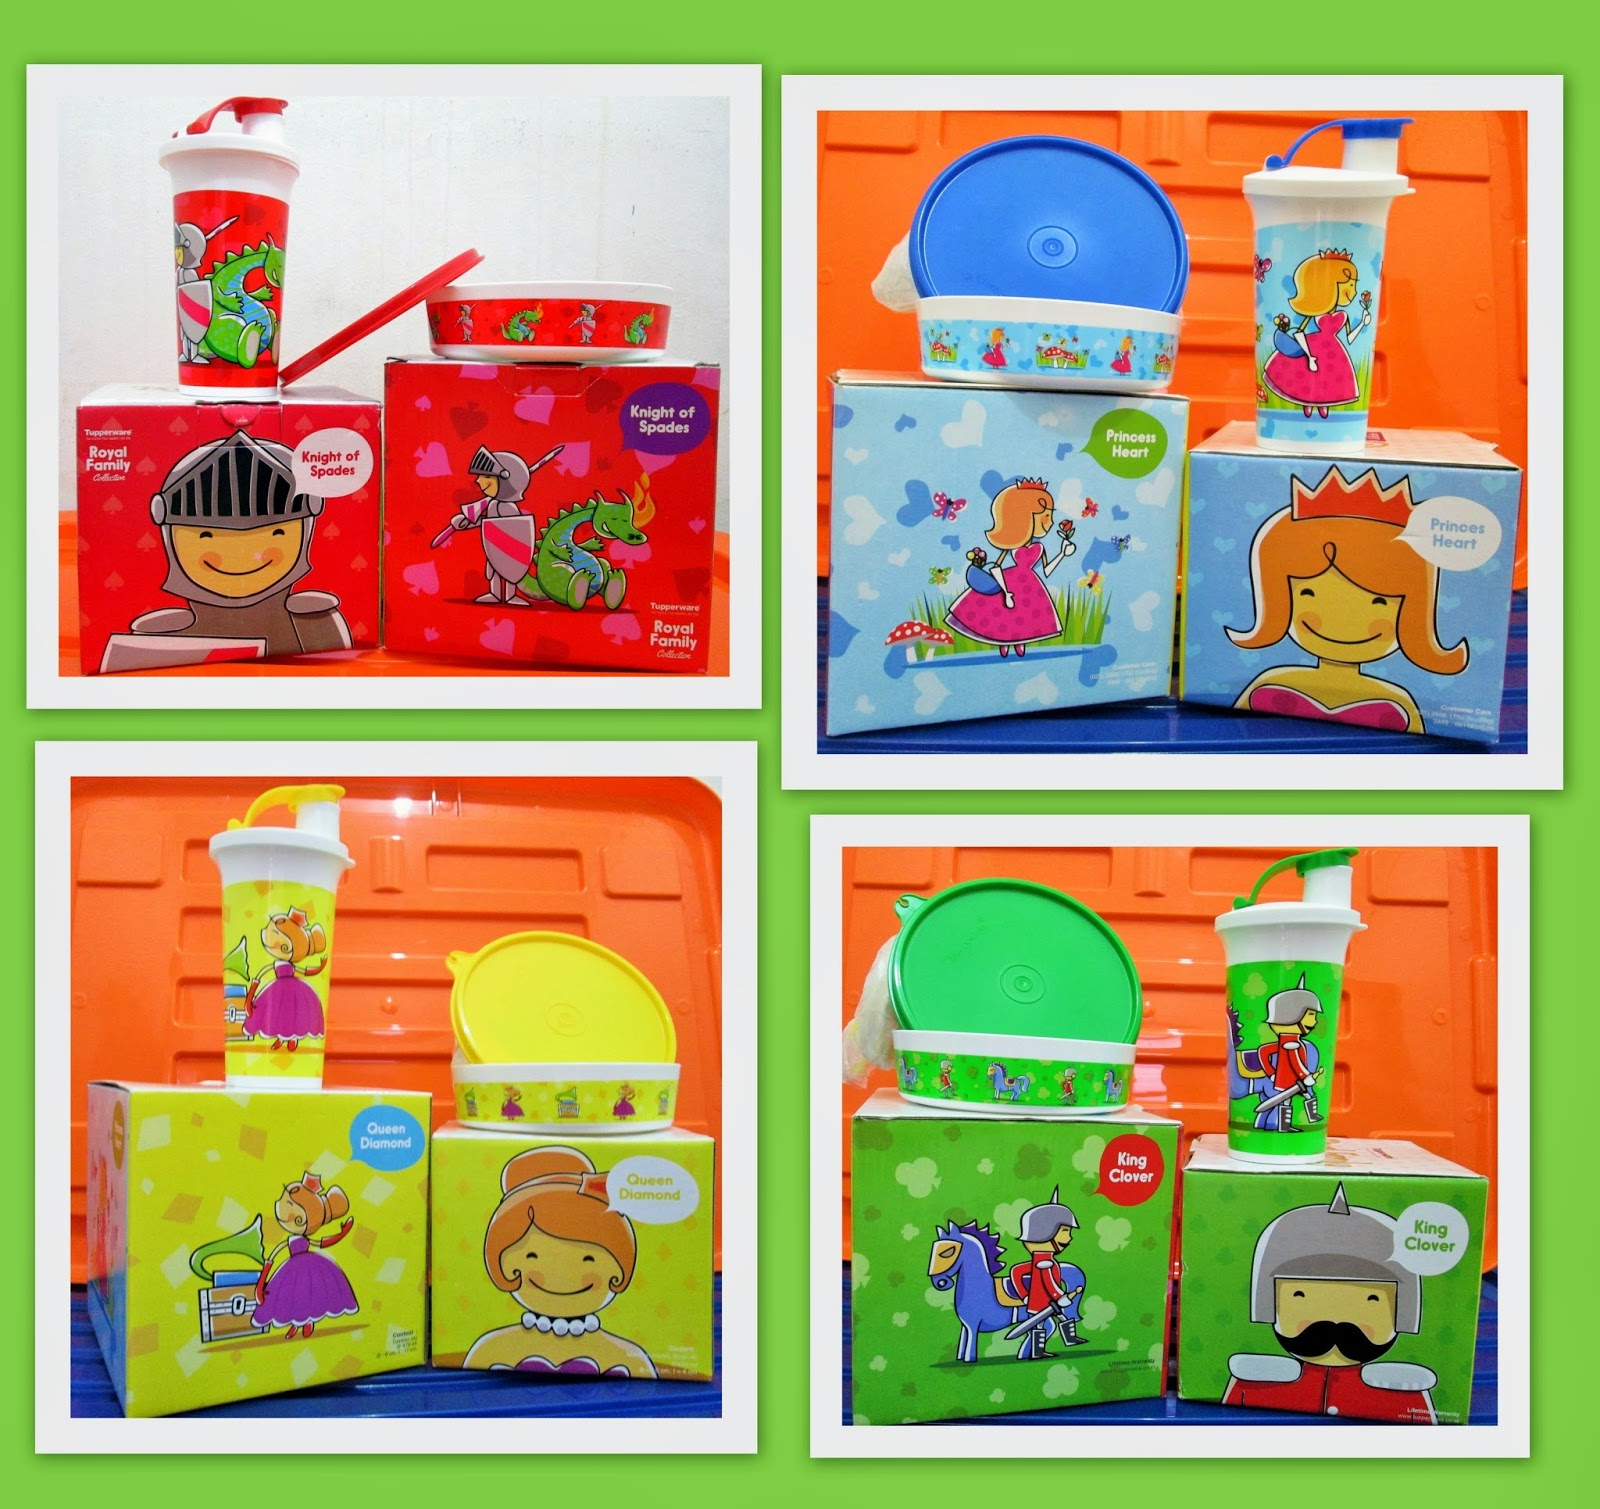 JUAL TUPPERWARE MURAH INDONESIA I DISTRIBUTOR TUPPERWARE MALAYSIA